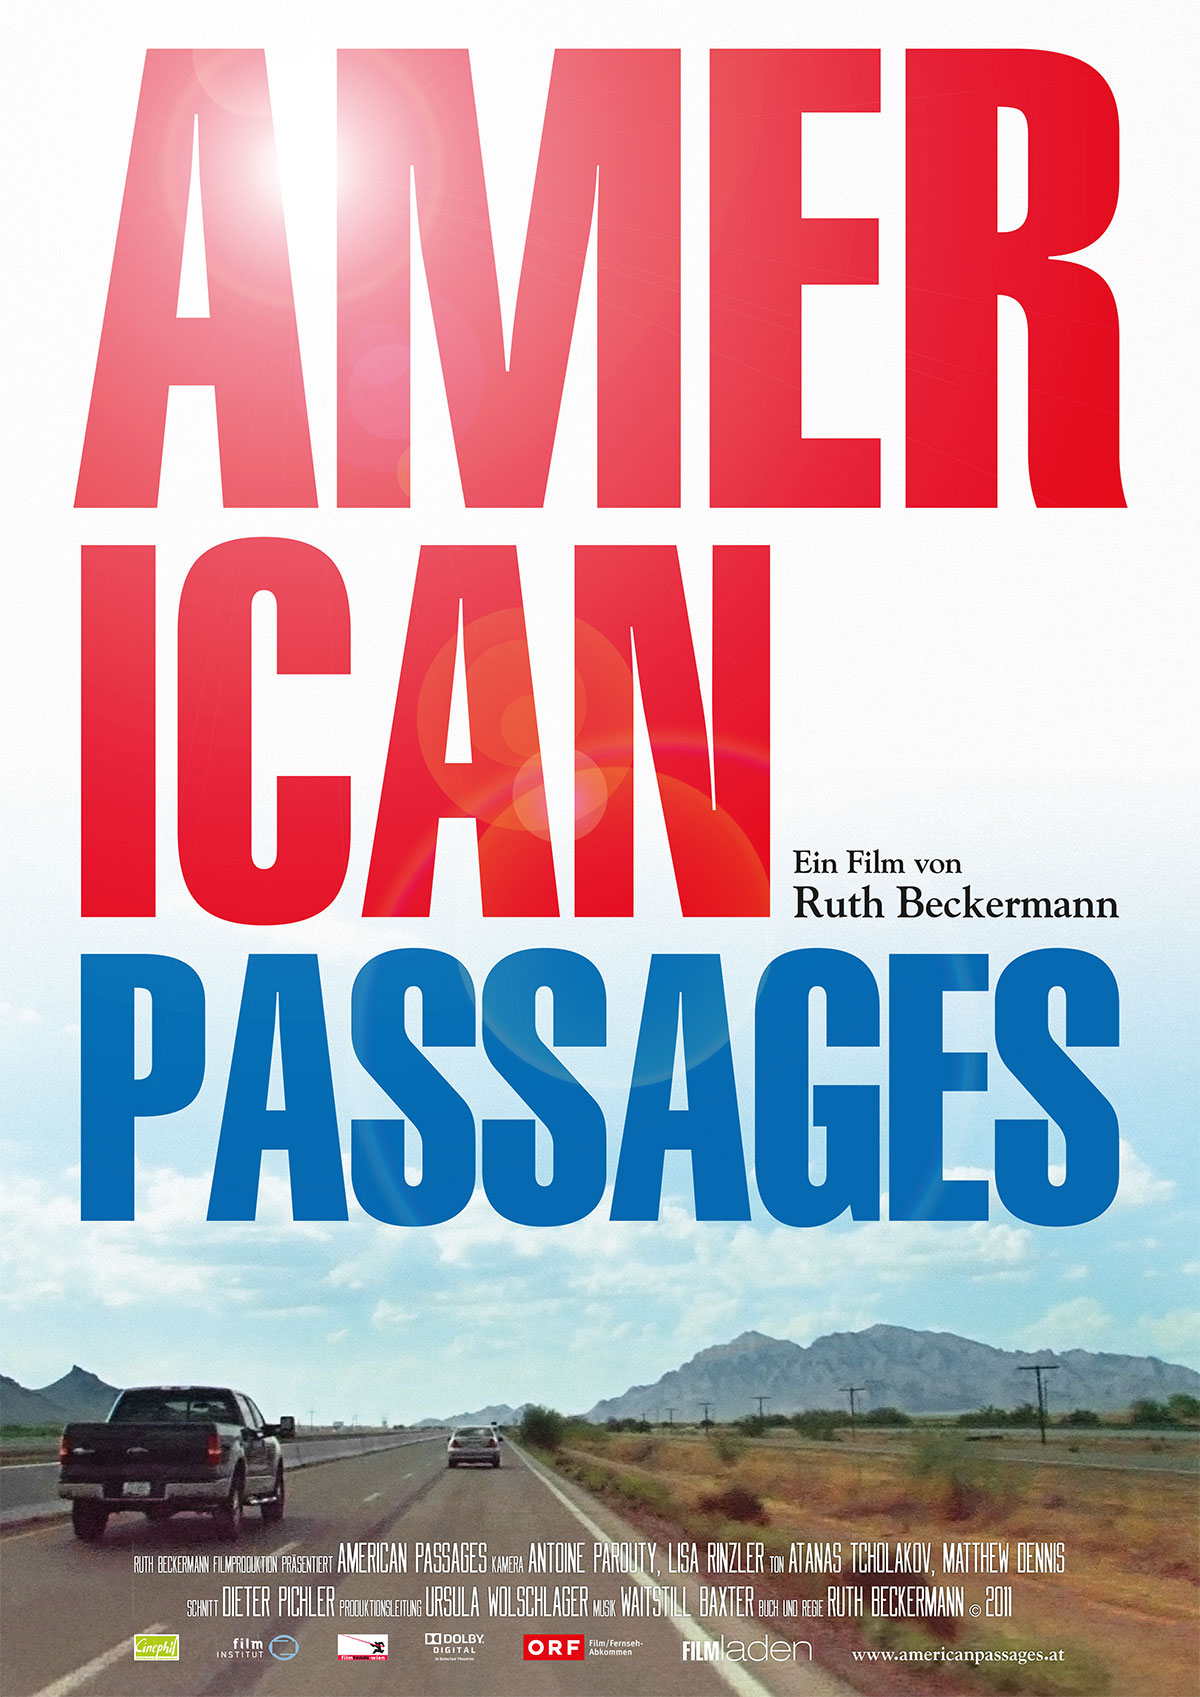 american-passages-filmladen-ruth-beckermann